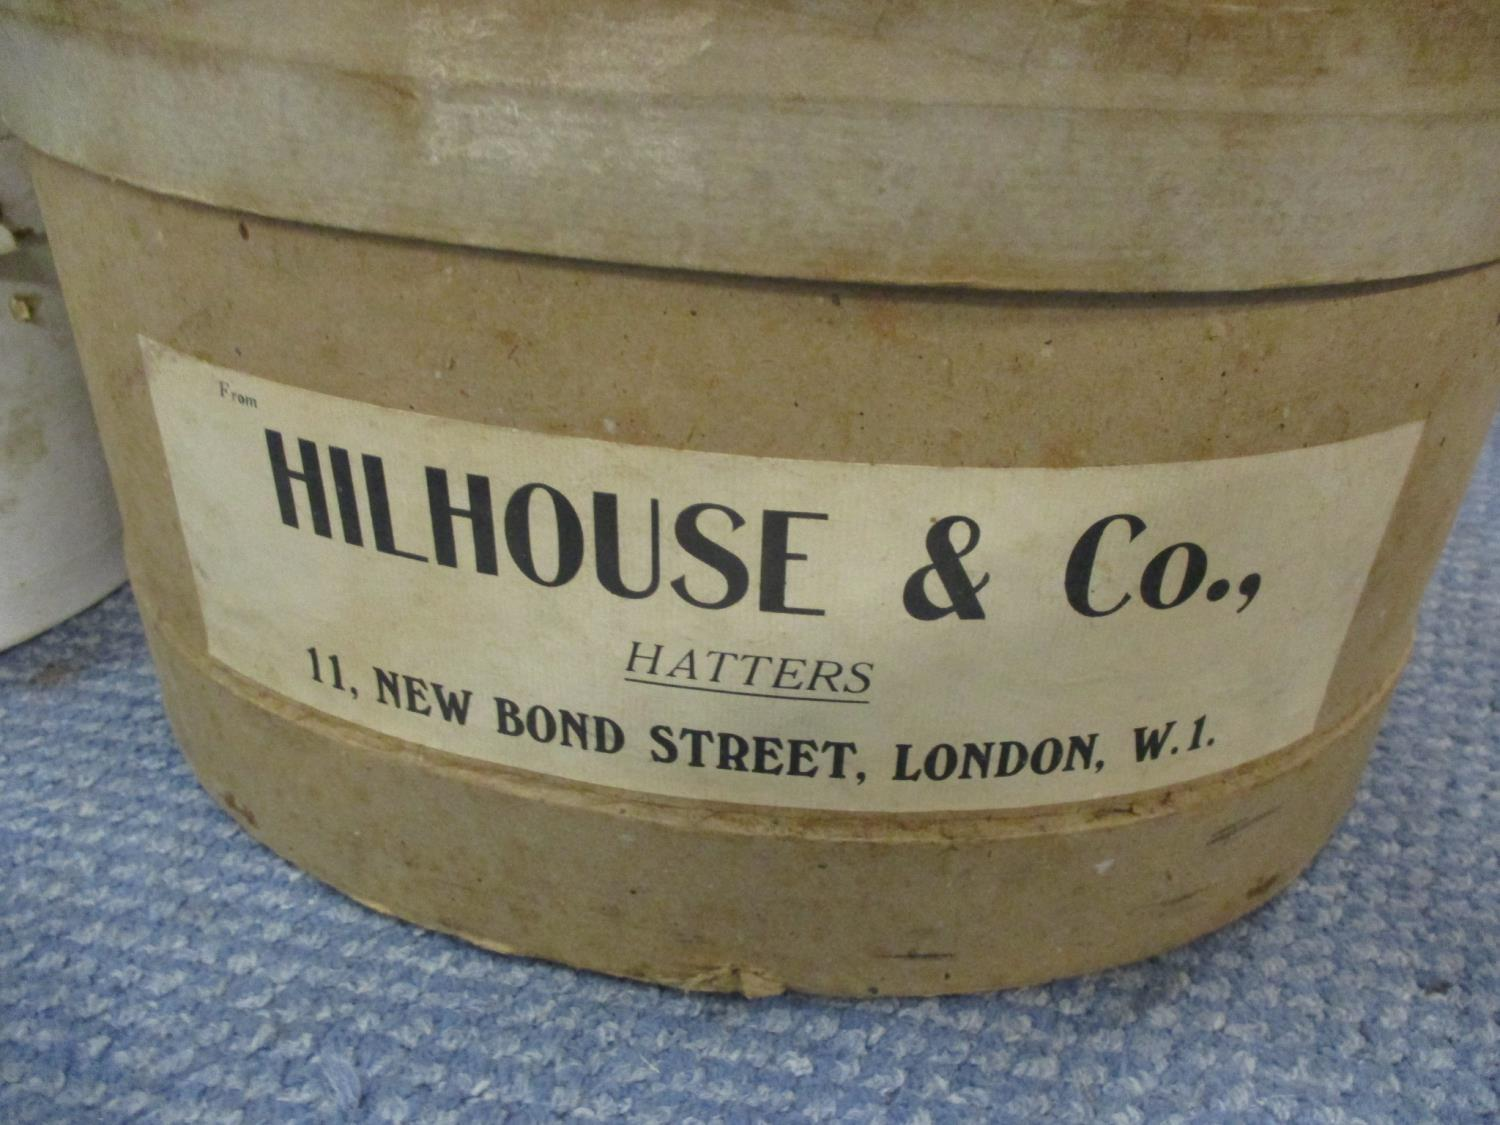 Hillhouse & Co, three gents hats comprising a bowler hat and two grey top hats together with three - Image 2 of 2